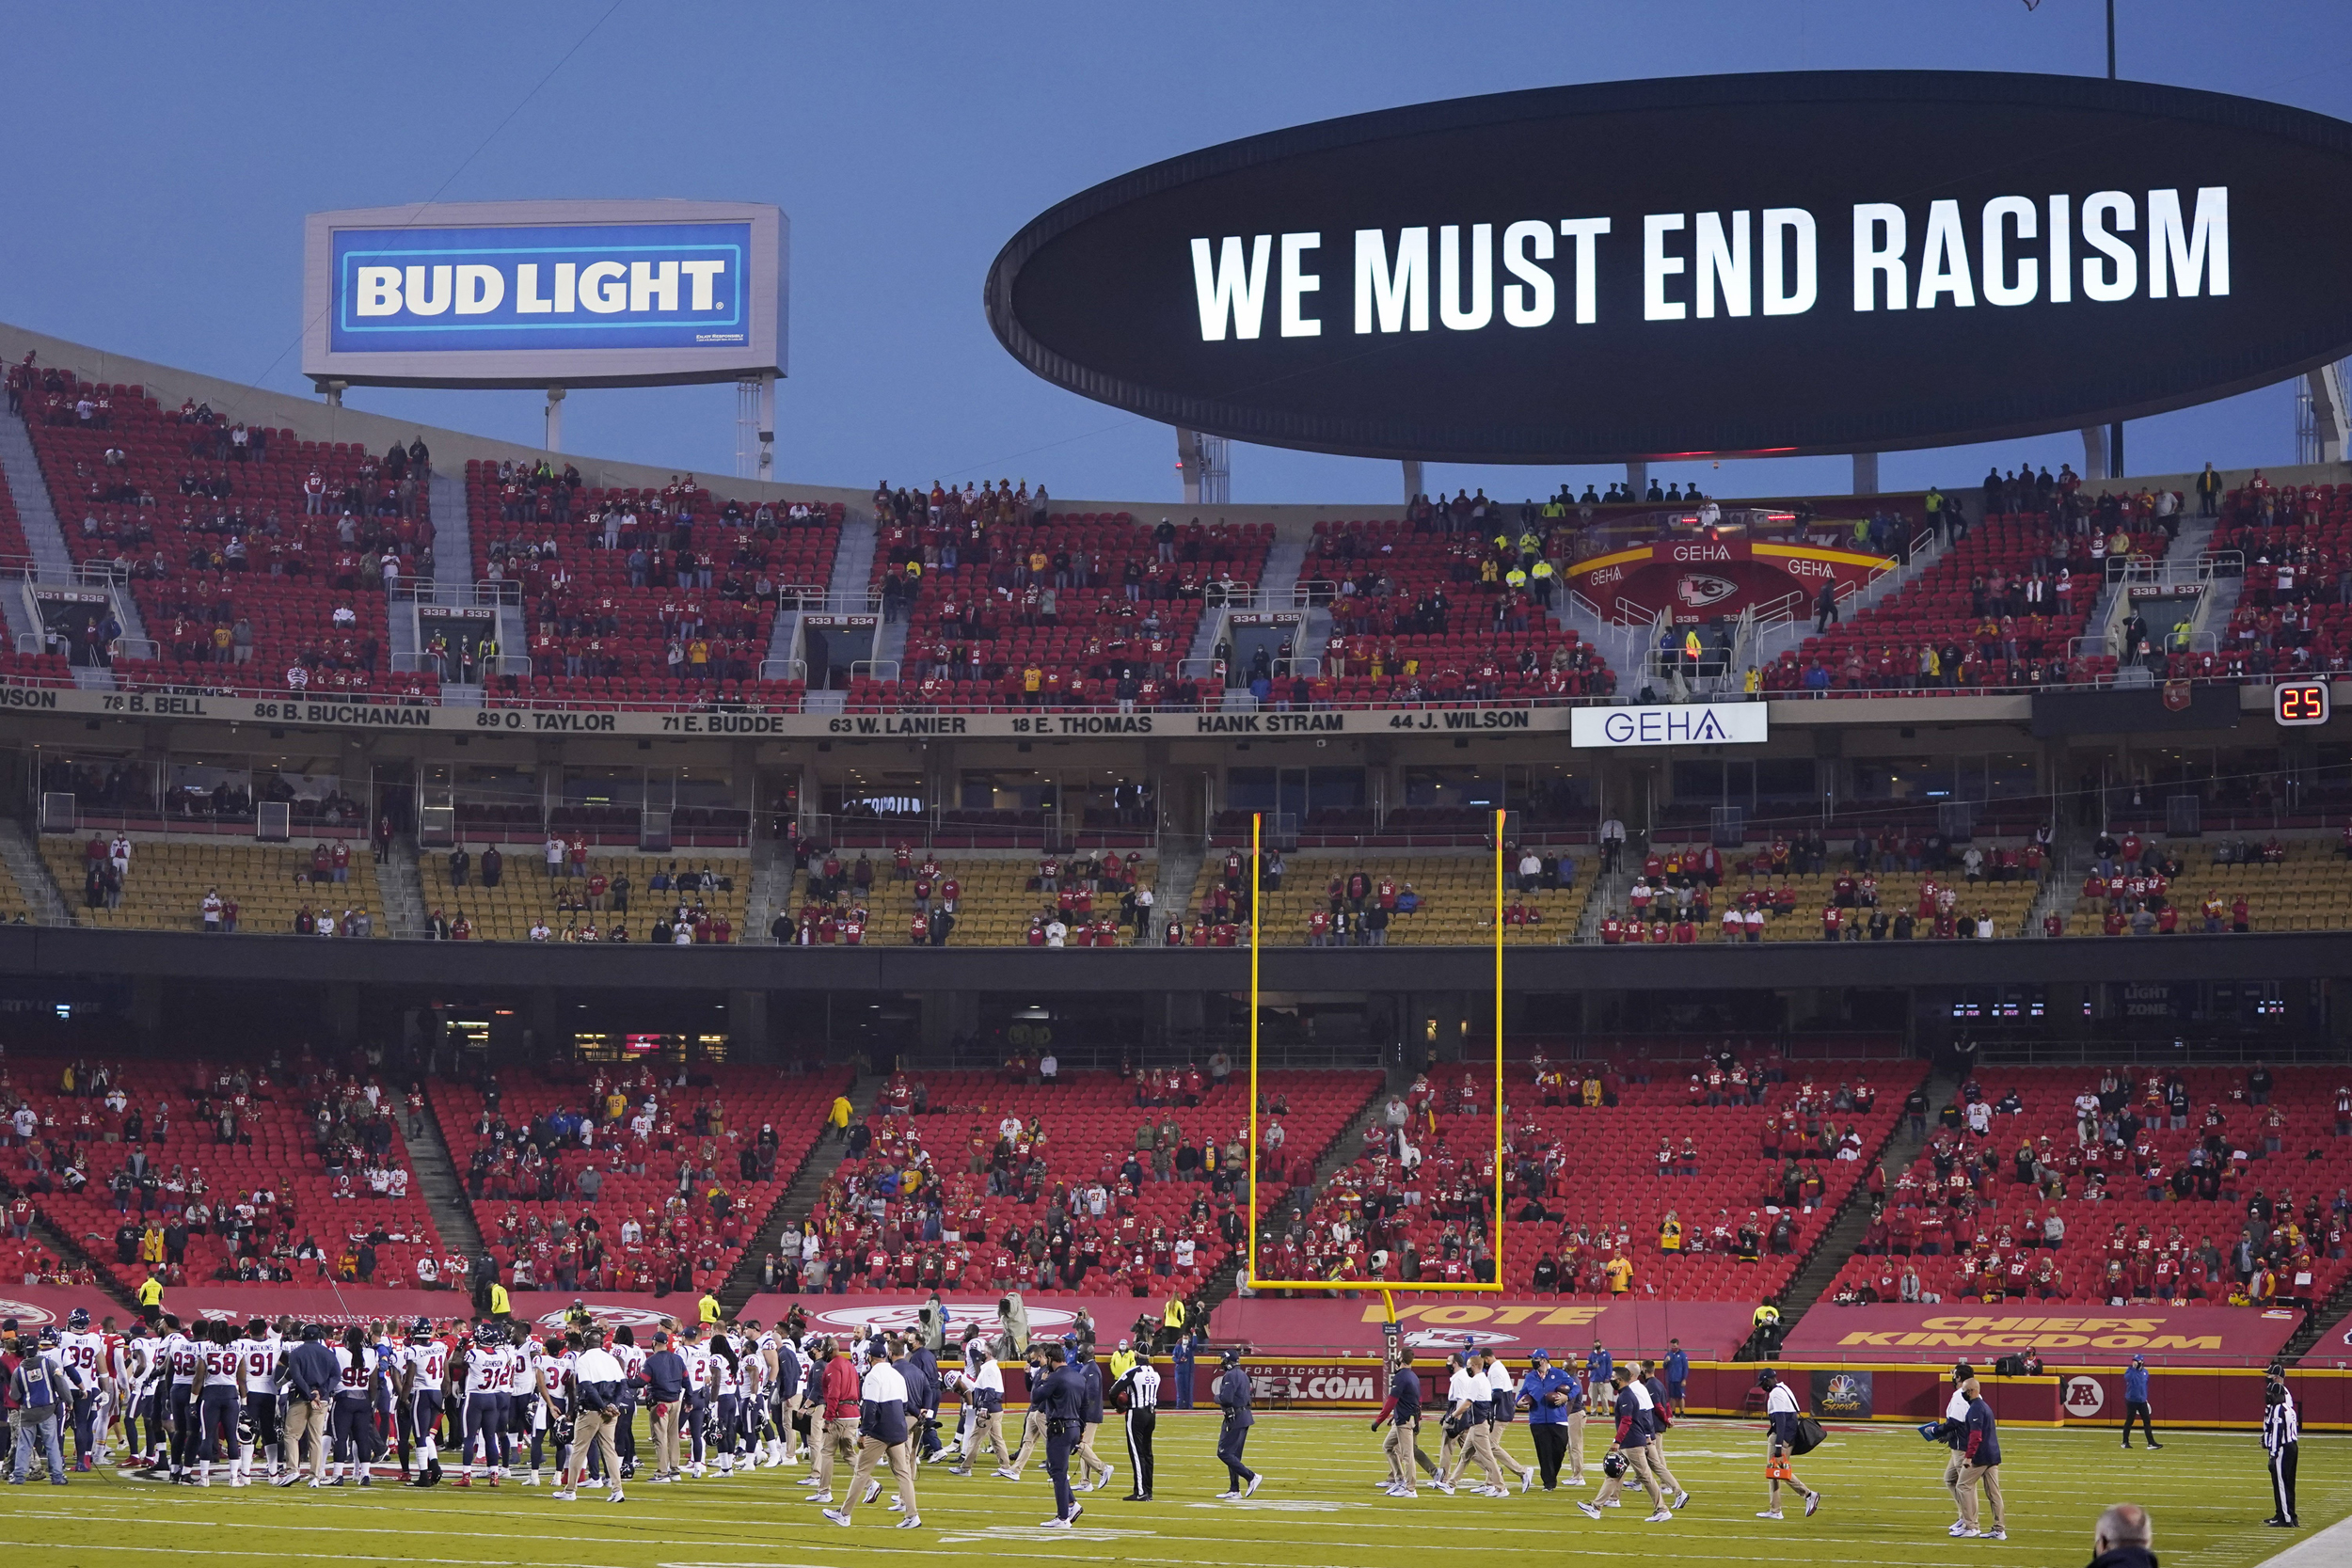 The Kansas City Chiefs In Super Bowl Liv Will Shine So Will Their Fans Racism